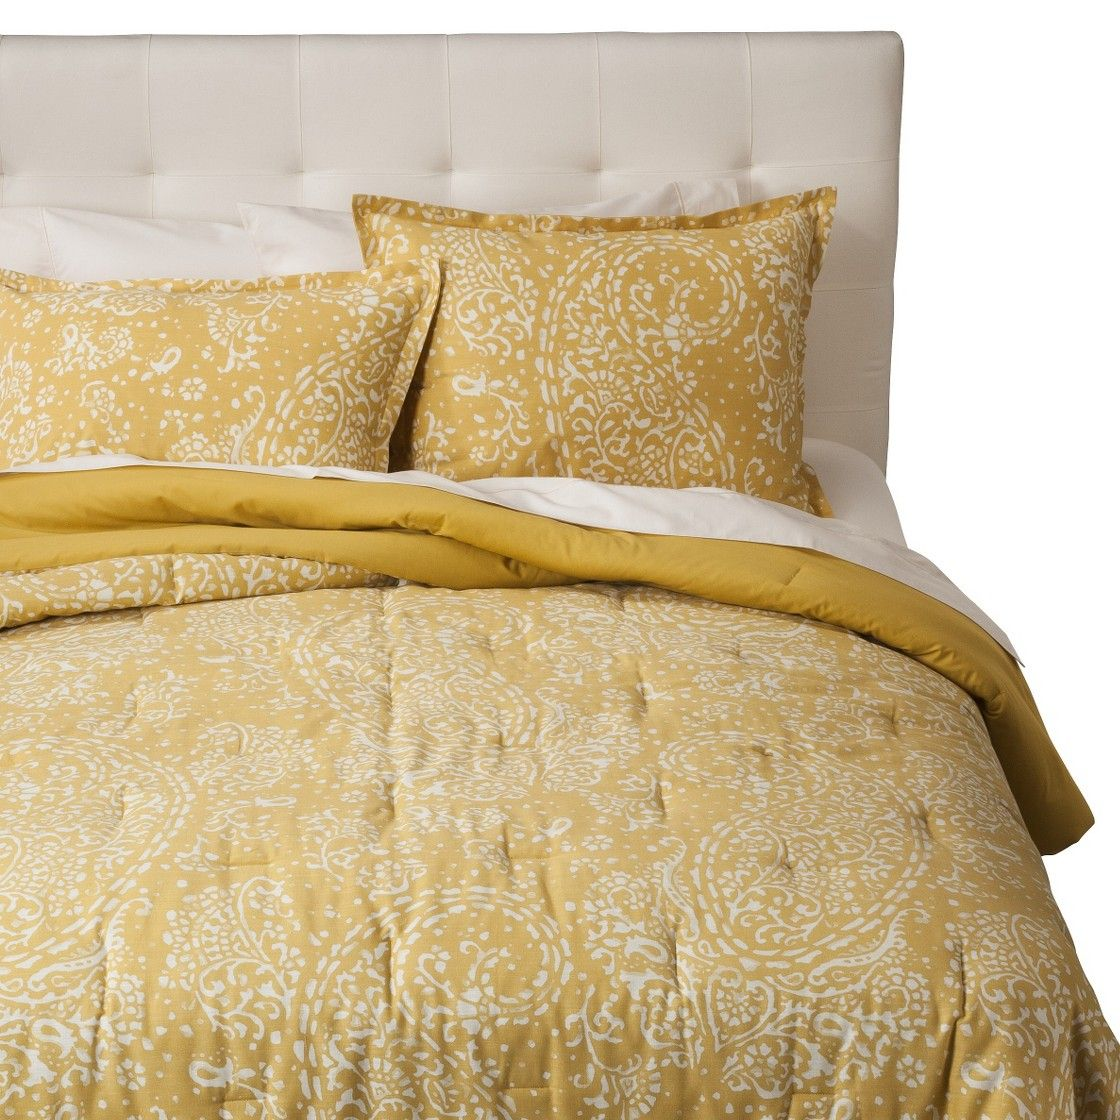 Target White Bedroom Furniture Threshold Paisley Comforter Set Yellow 7999targetcom On Sale